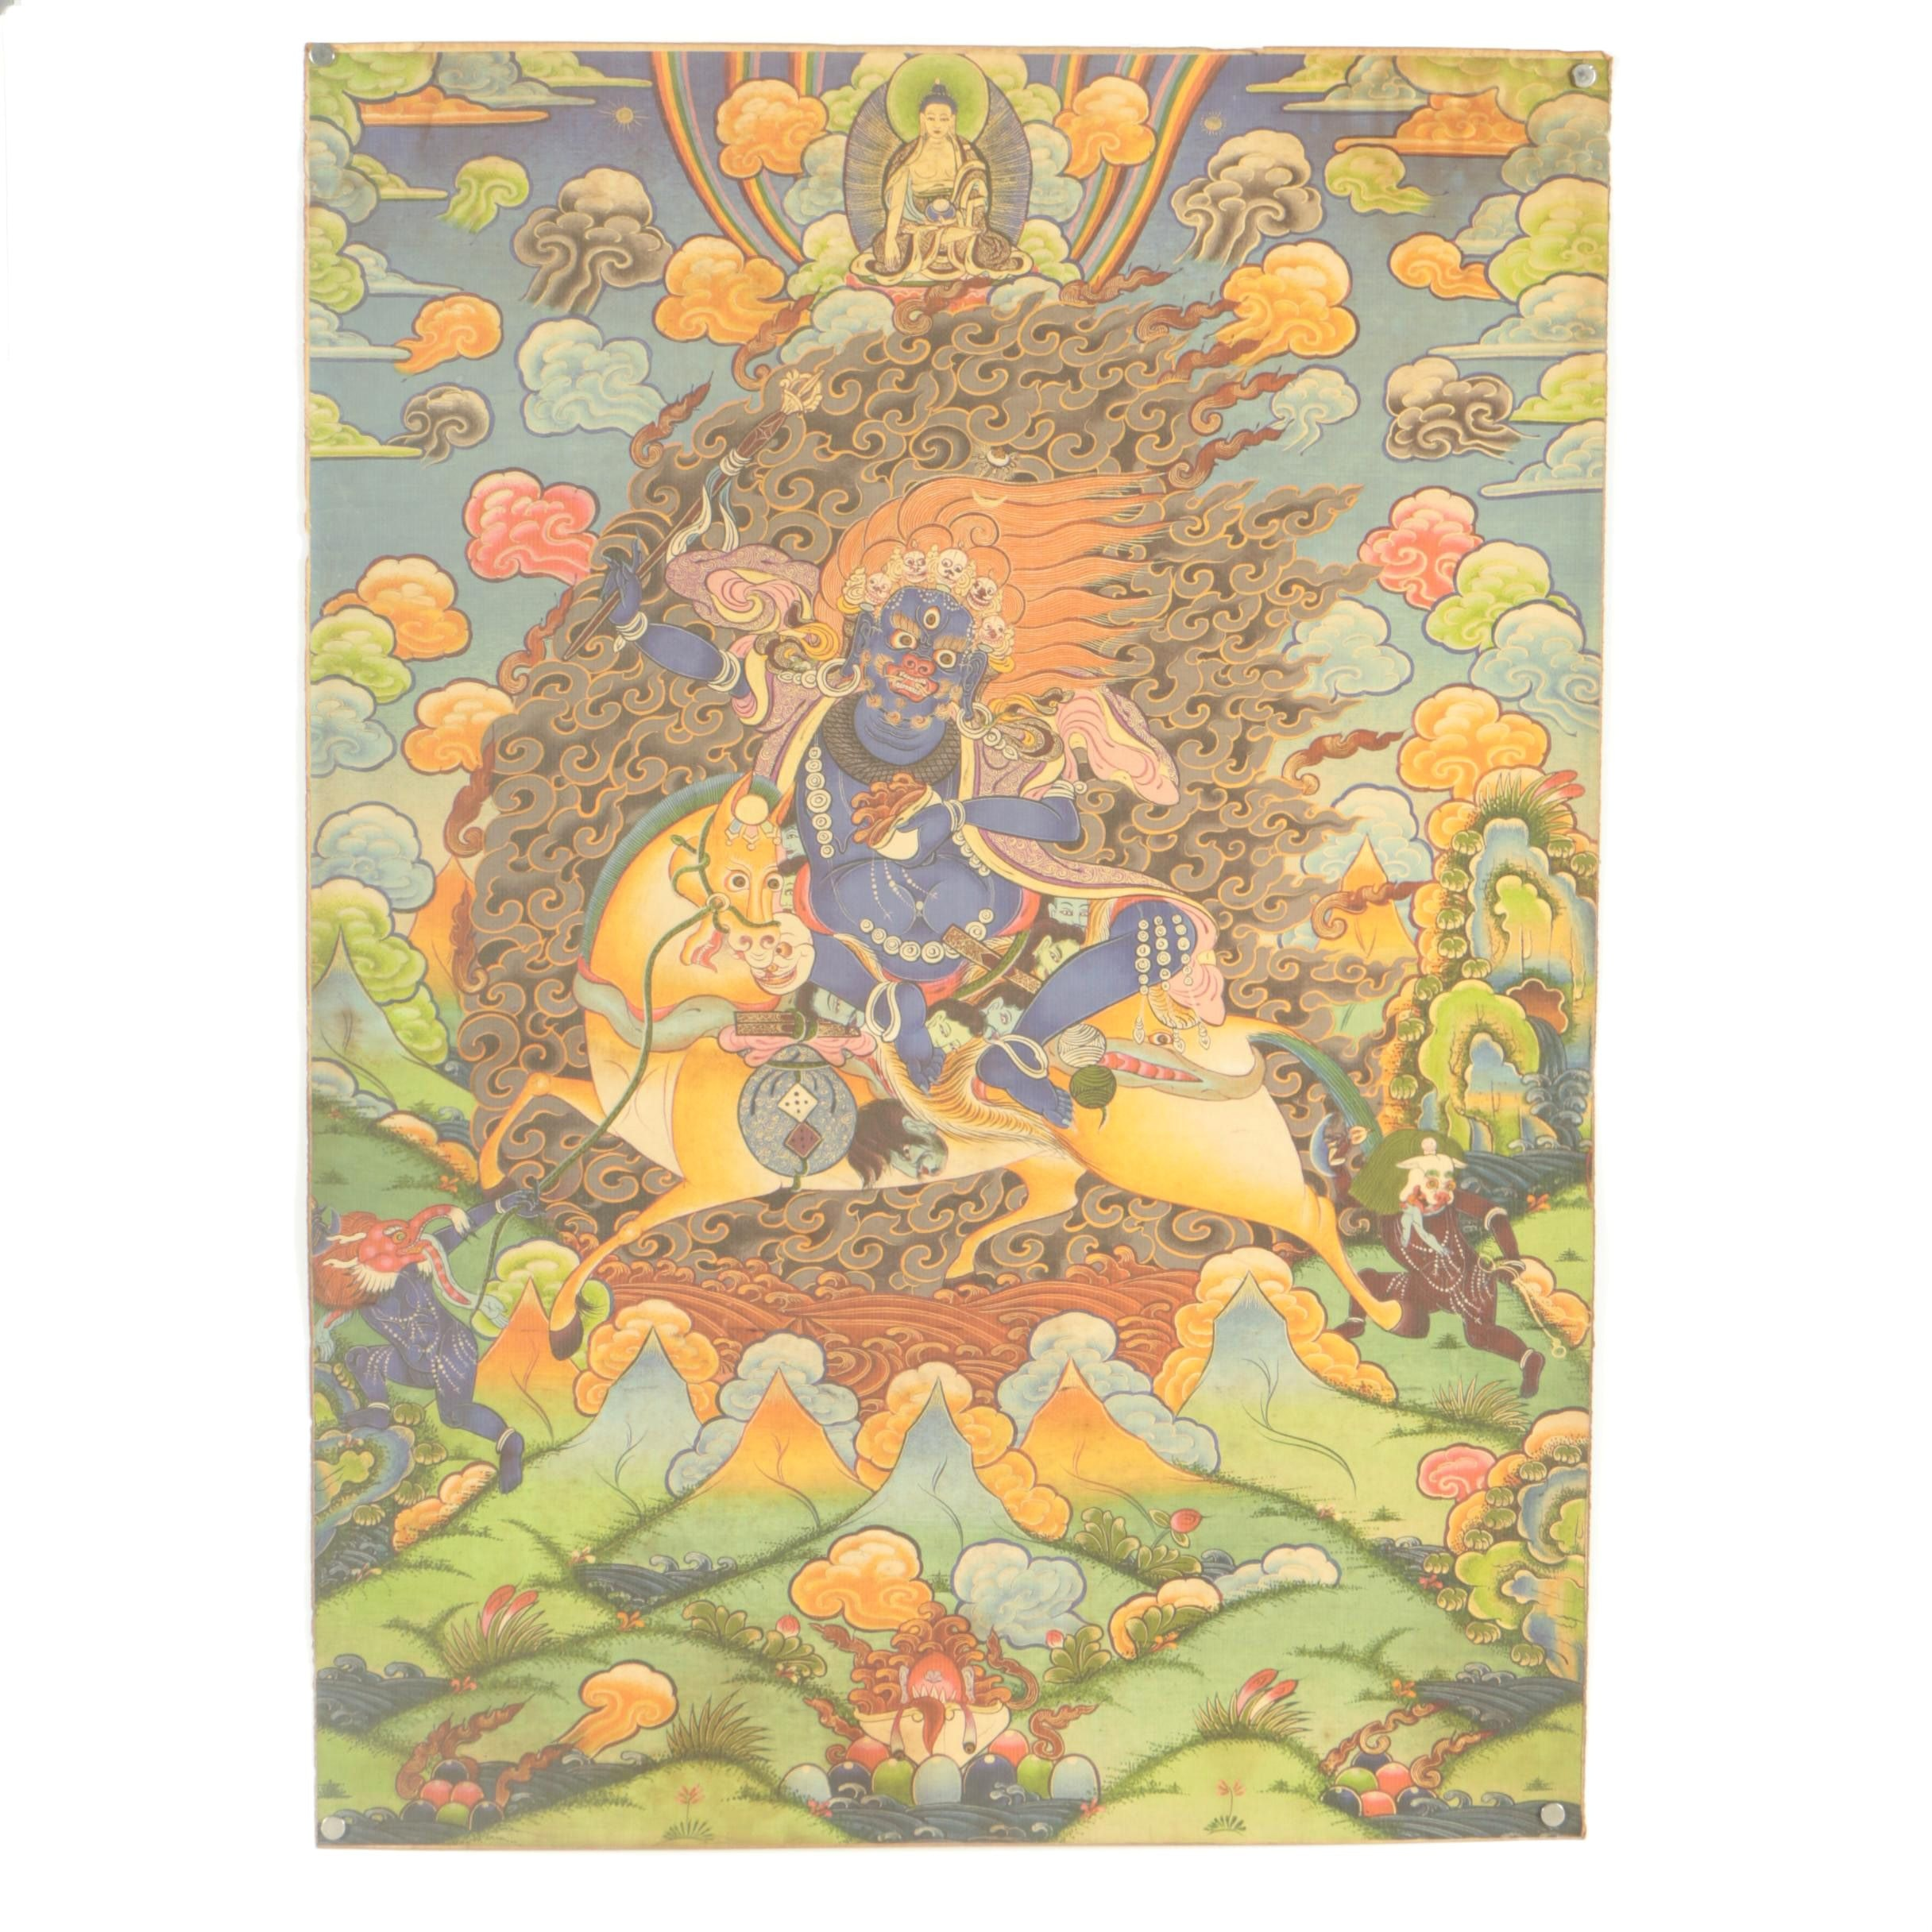 Late 20th to 21st Century Tibetan Style Giclée